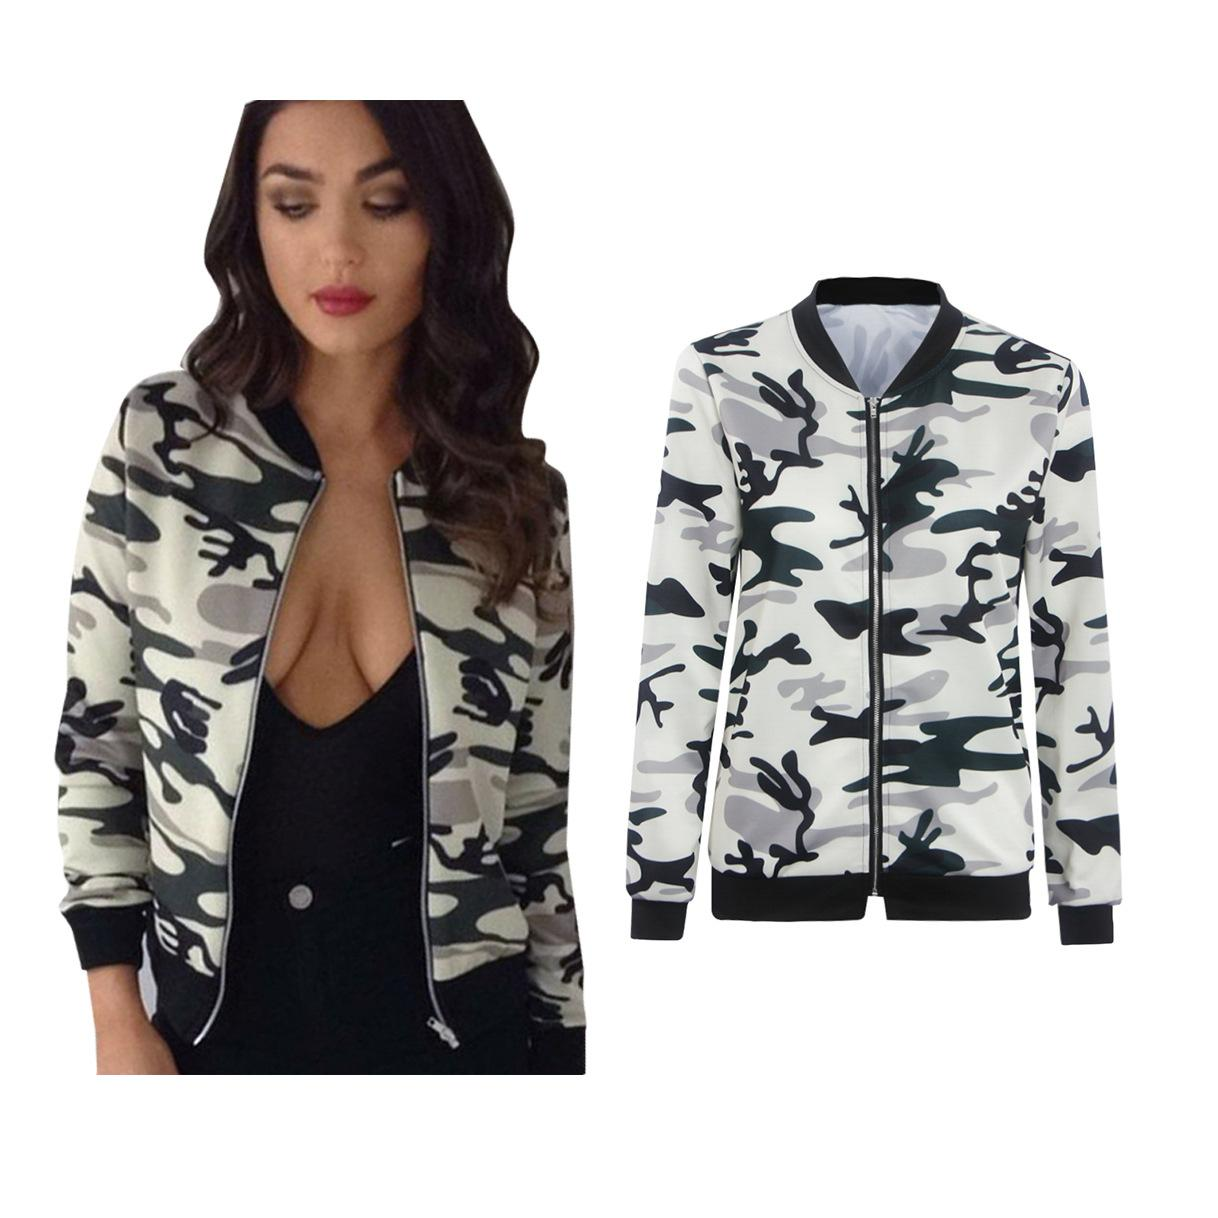 c877c39d9e0b7 Fashion Womens Ladies Biker Celebrity Tops Camo Flower FLoral Print Bomber  Jackets Camo Outfit Outwear Coat Kids Leather Jackets Cheap Jackets From ...